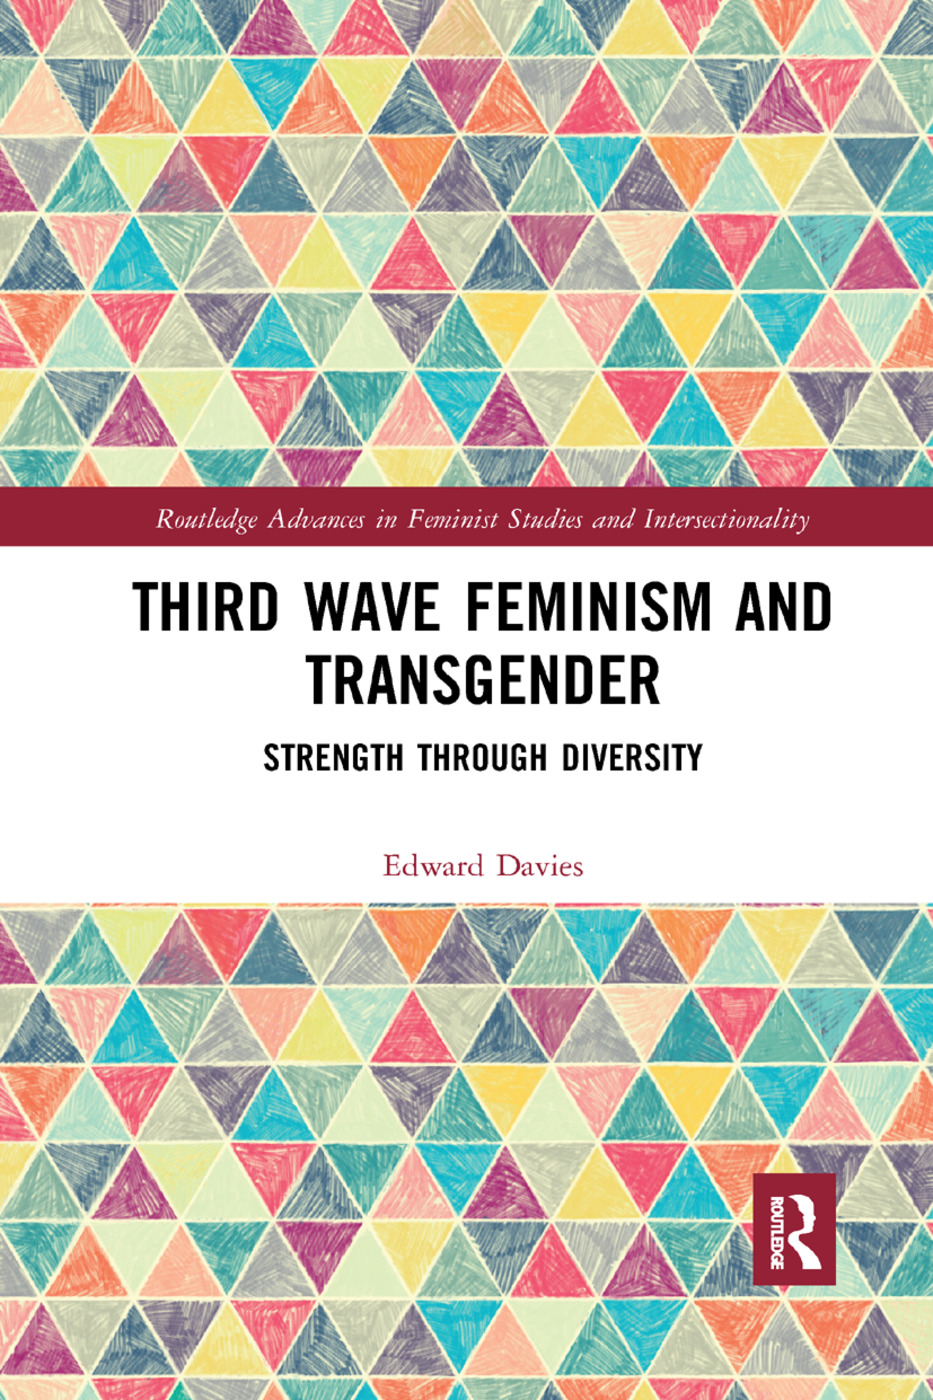 Third Wave Feminism and Transgender: Strength through Diversity book cover